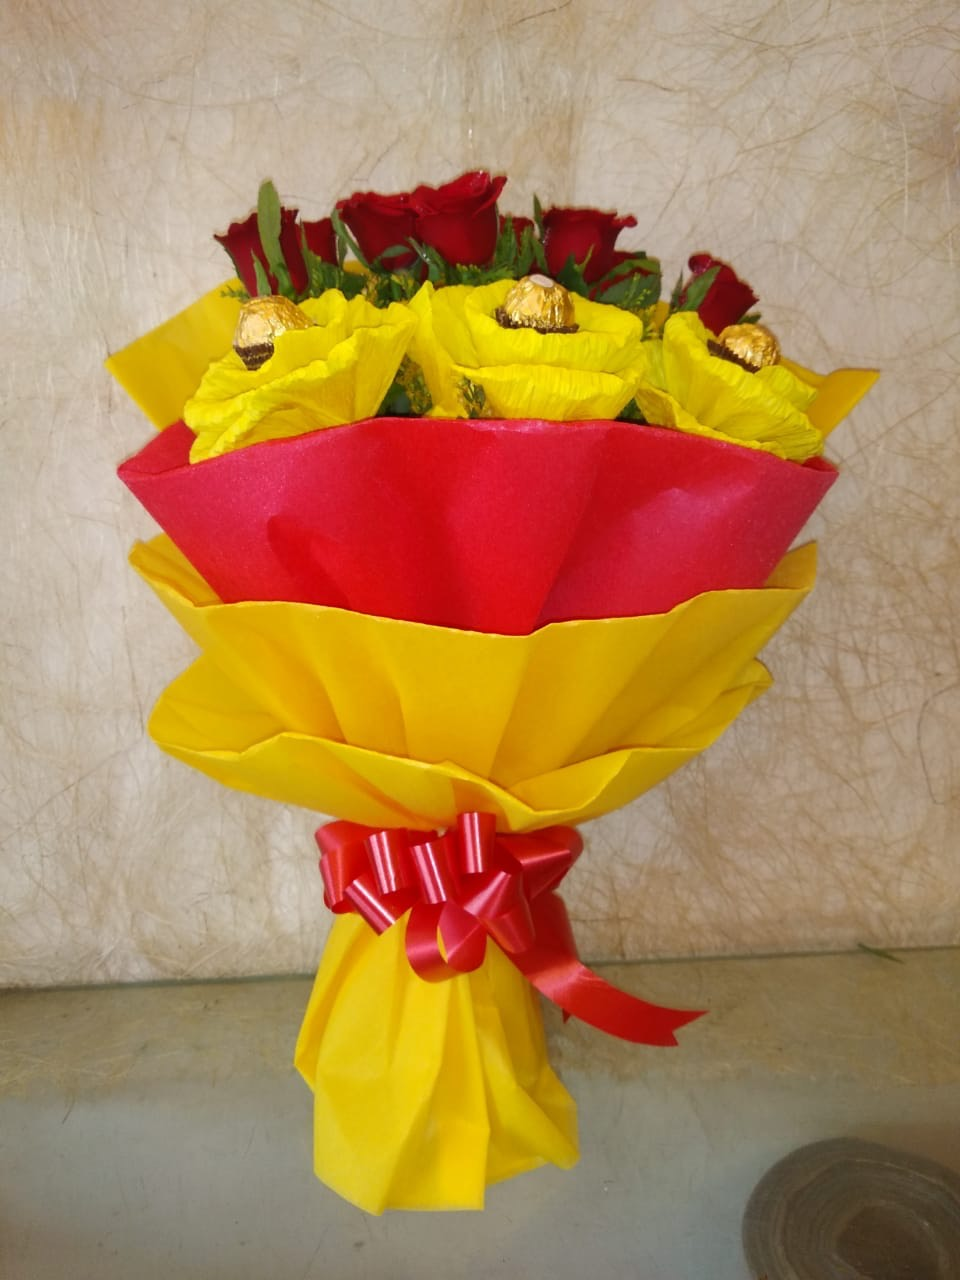 Cake Delivery Delhi University DelhiRed Roses Ferrero Rocher Bunch